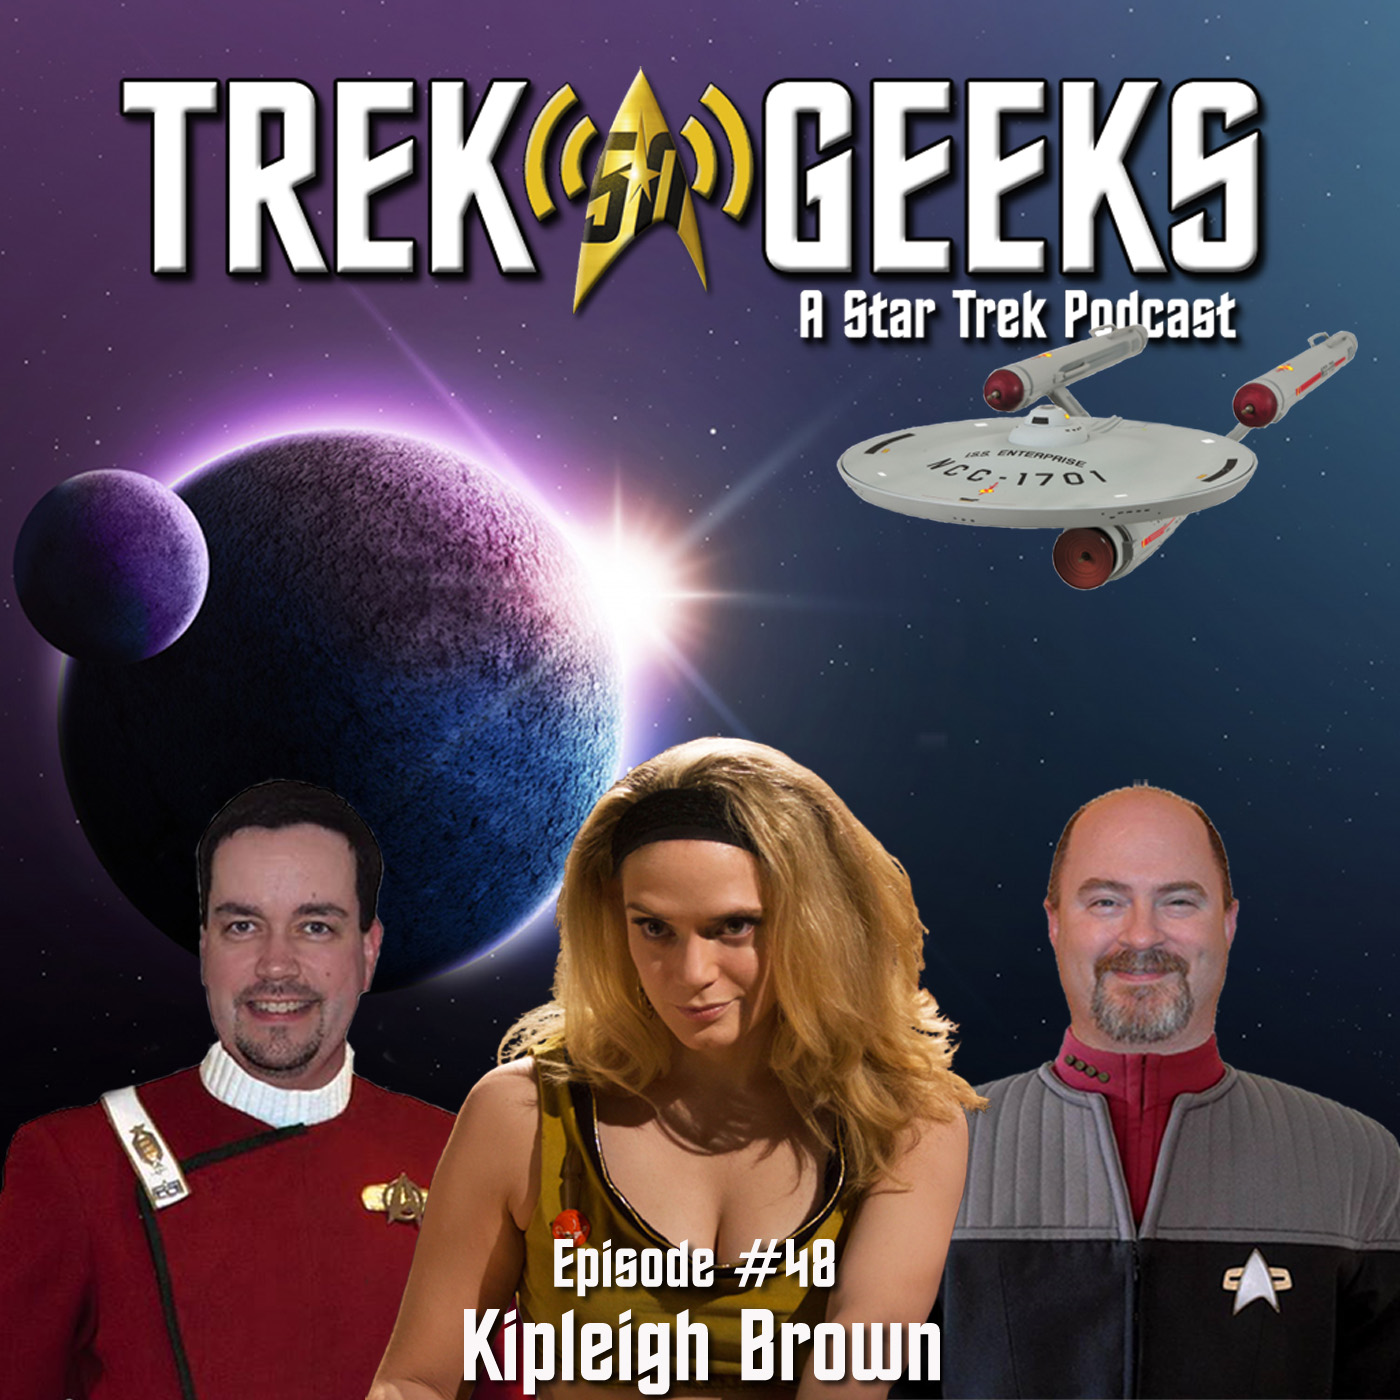 Kipleigh Brown Star Trek